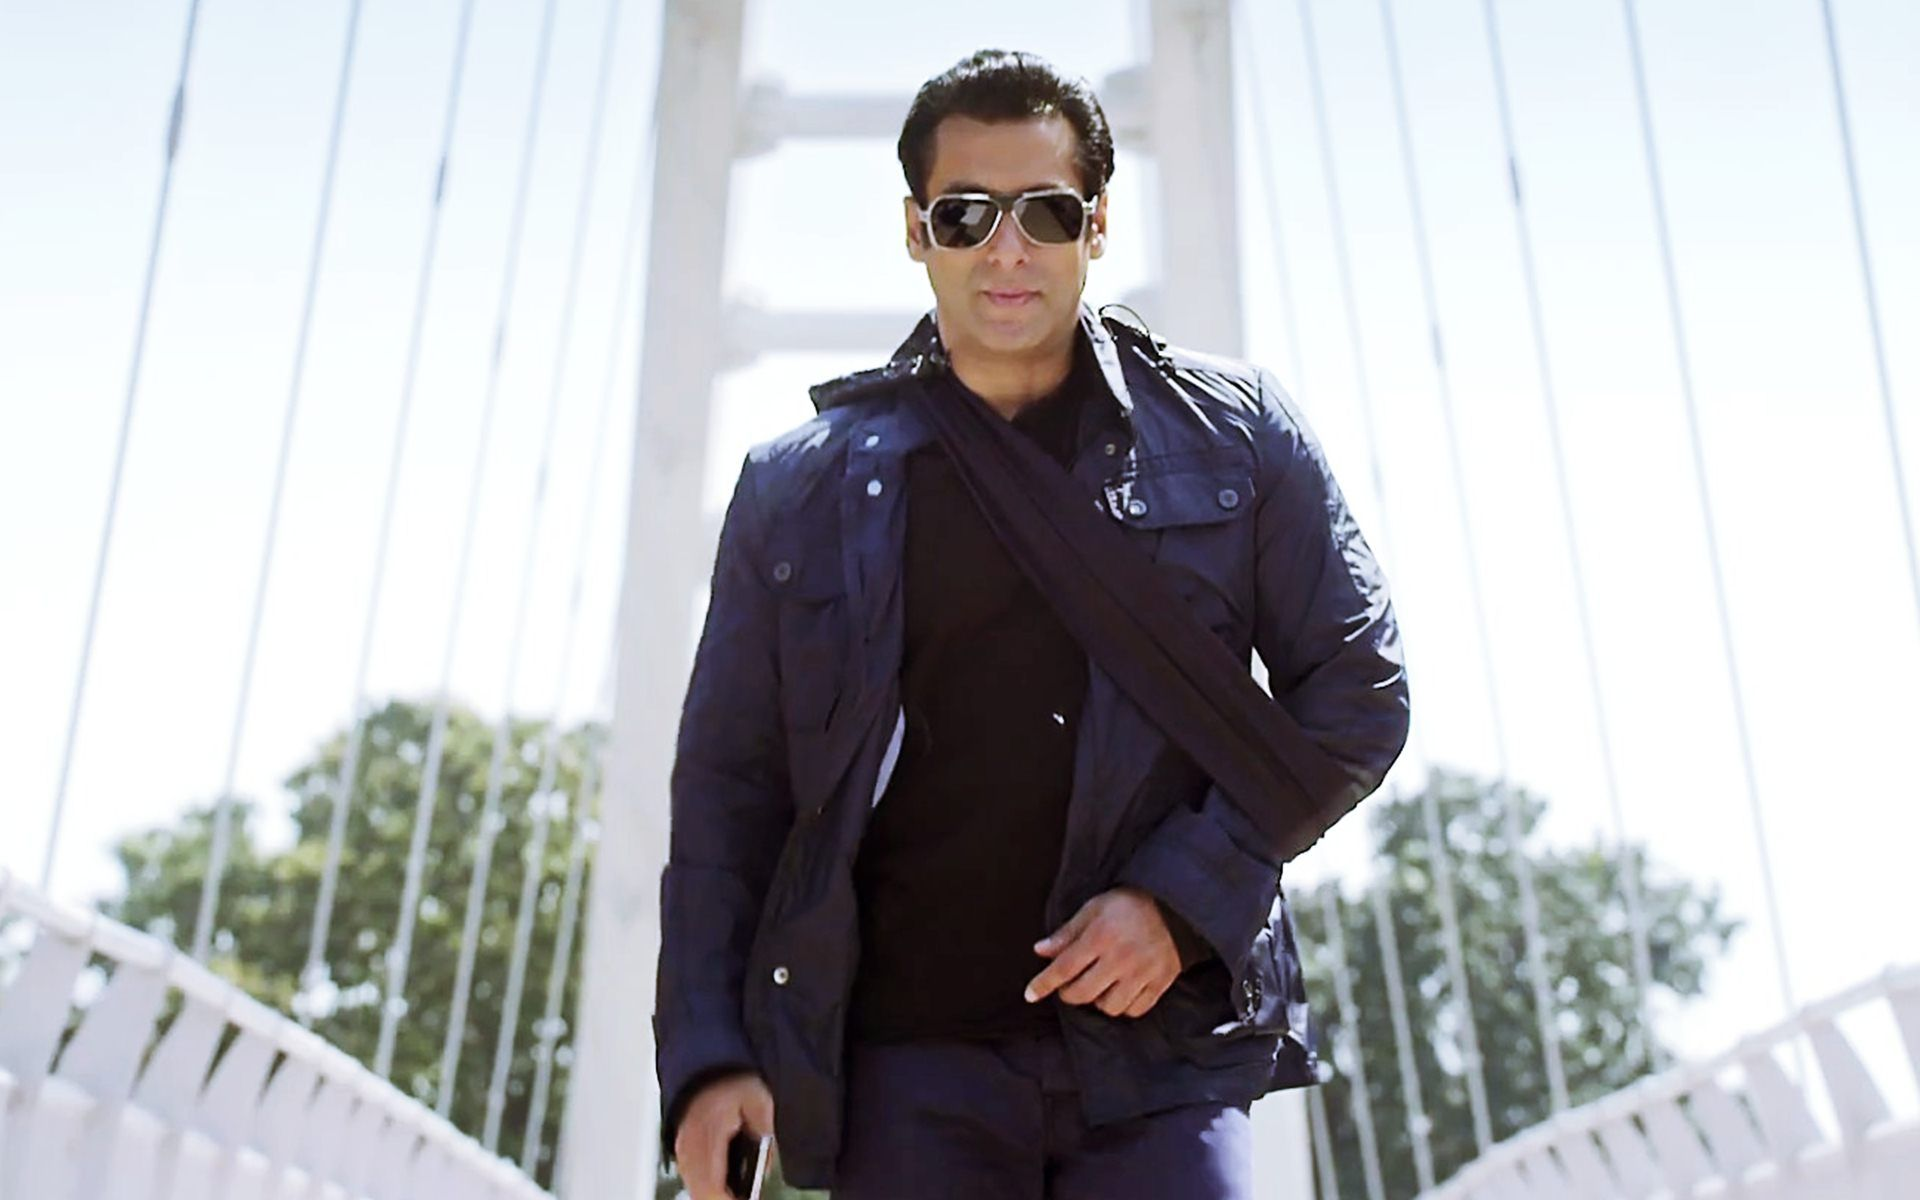 Salman Khan Kick Film Wallpaper Vinnyoleo Vegetalinfo